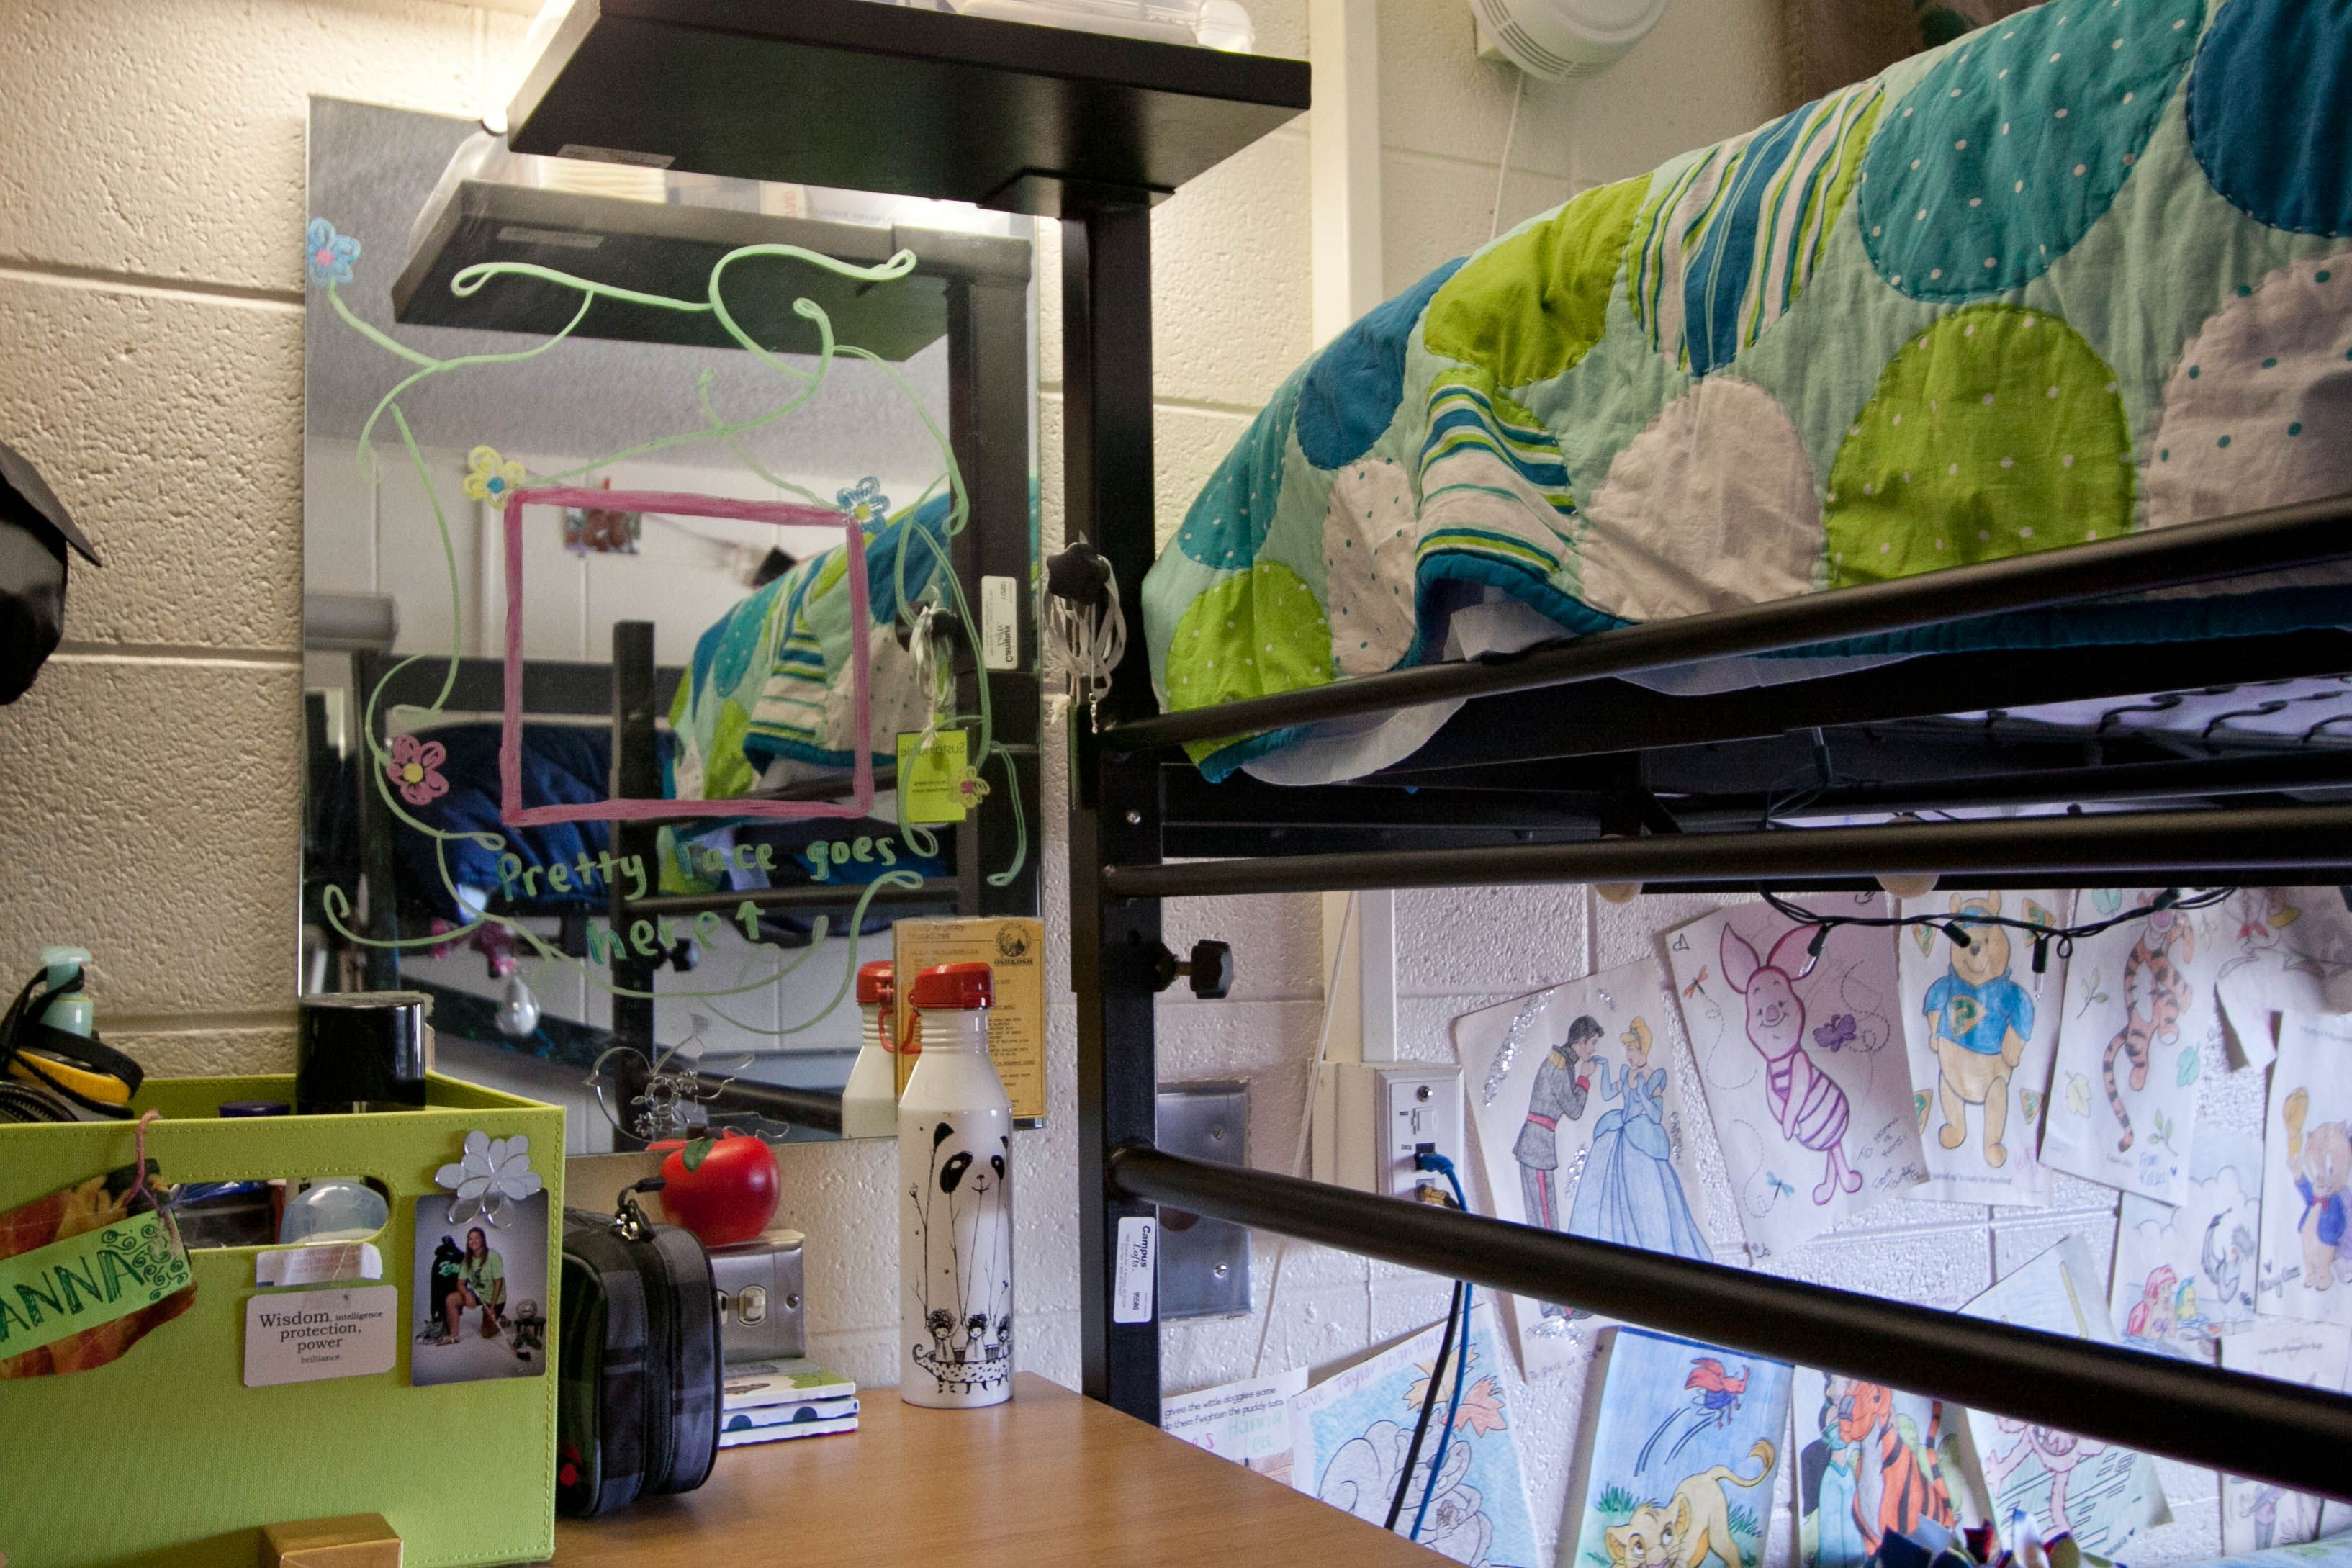 pics dorm rooms marvellous college tumblr inspiration layout ideas for safe decor with room furniture